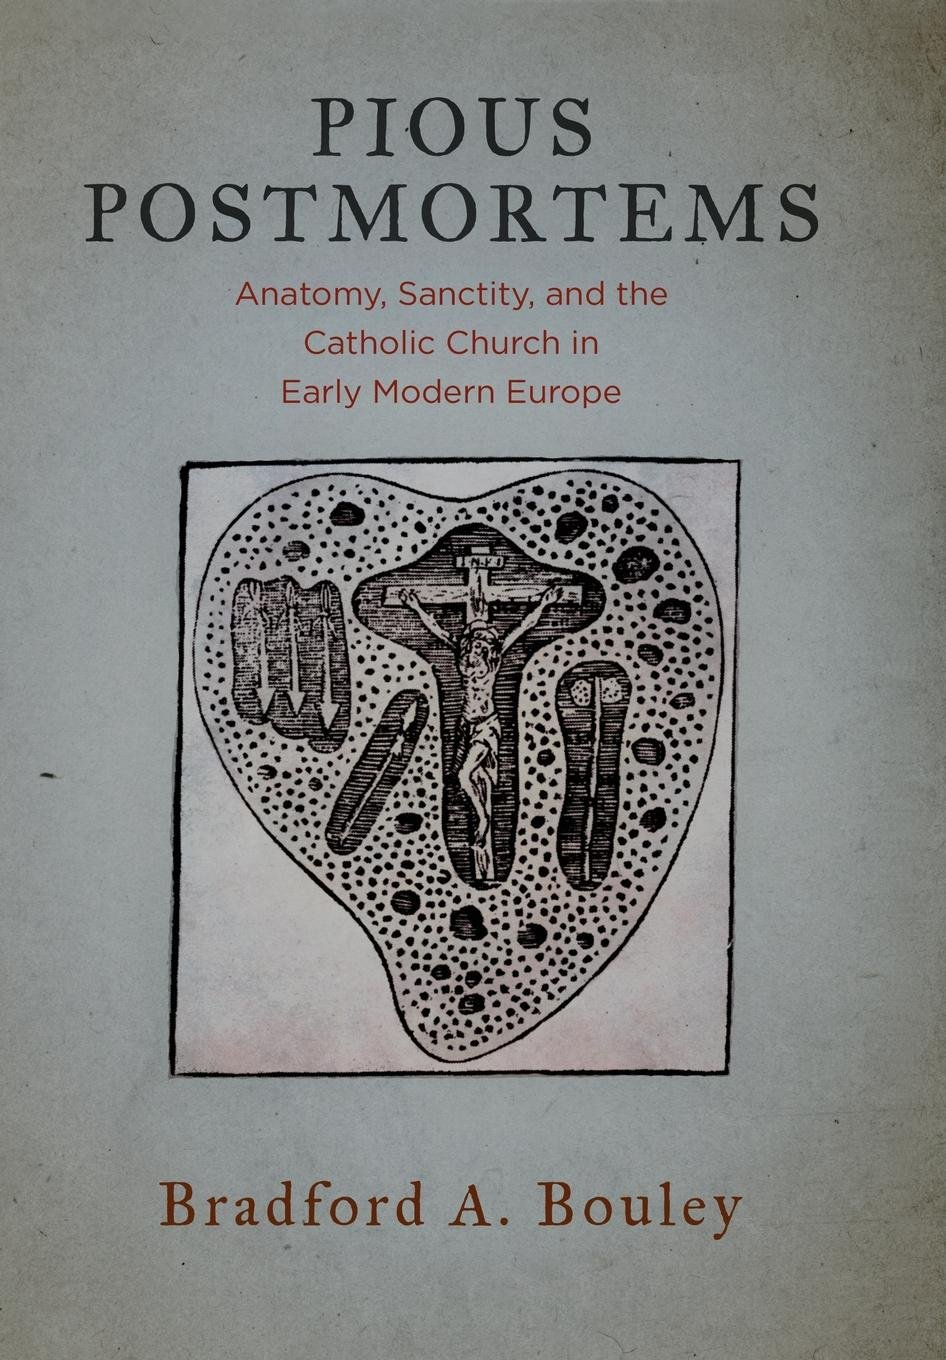 Download Pious Postmortems: Anatomy, Sanctity, and the Catholic Church in Early Modern Europe PDF